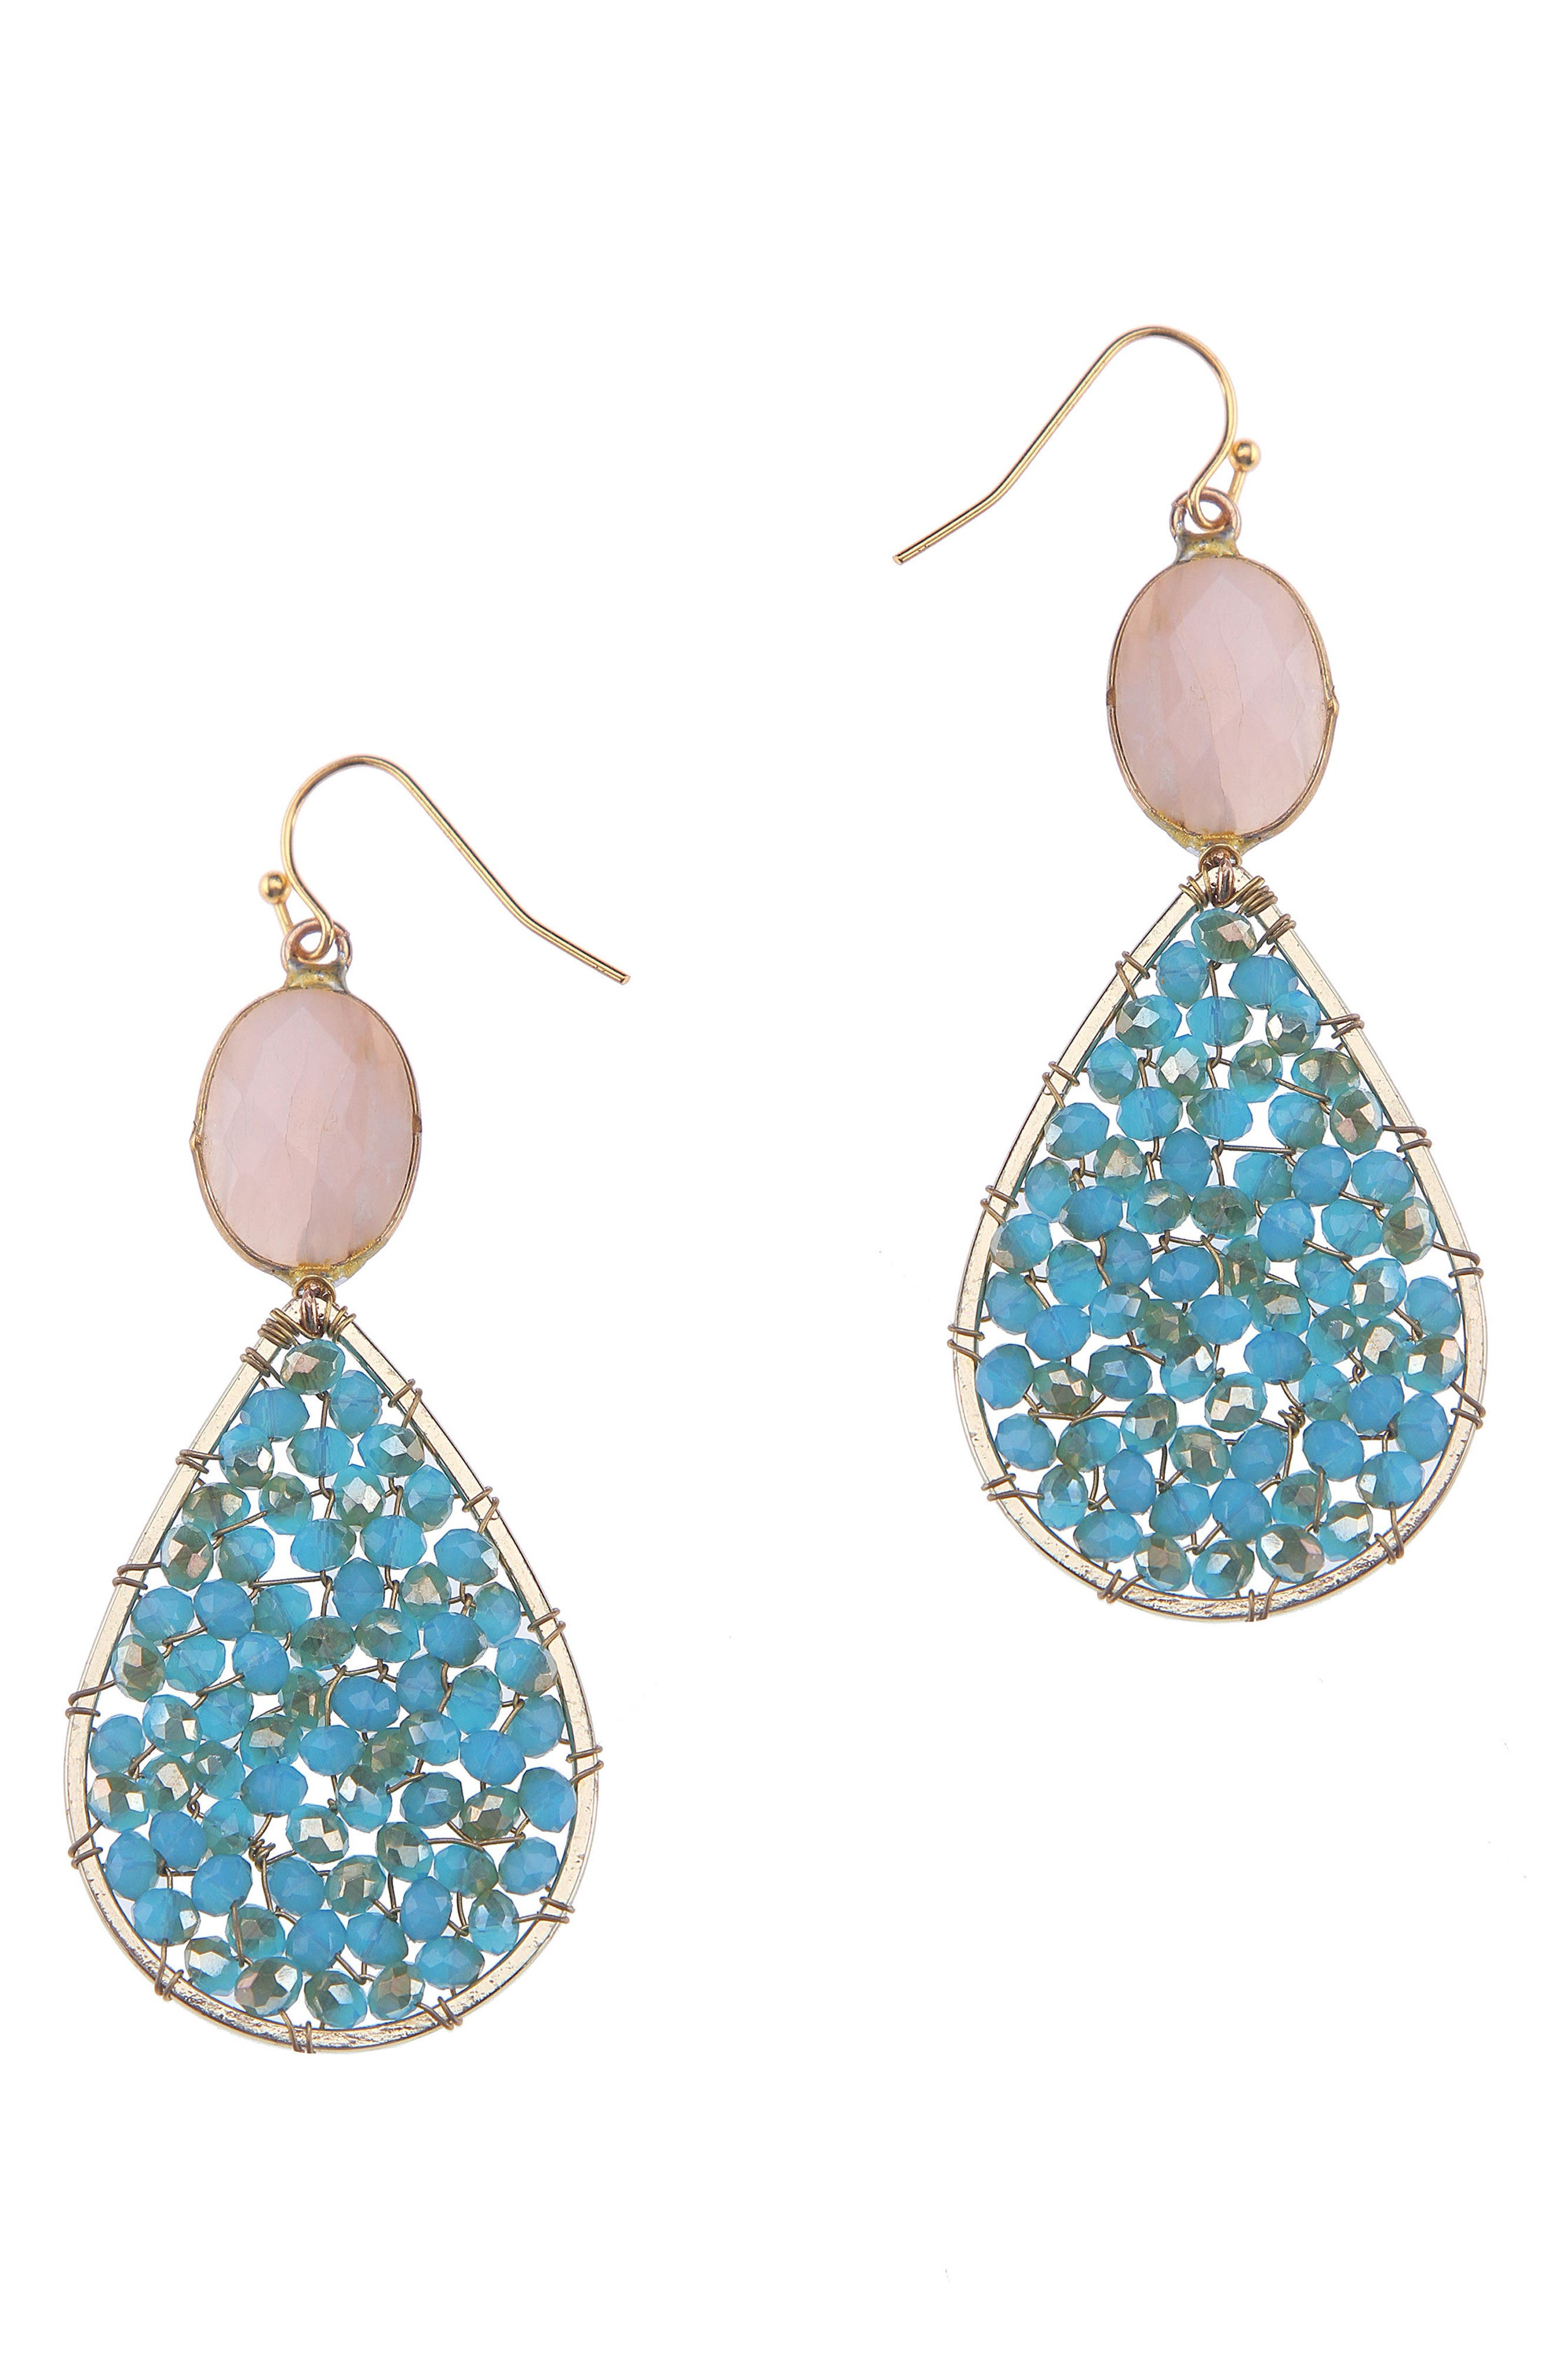 Crystal Teardrop Earrings,                         Main,                         color, Aqua